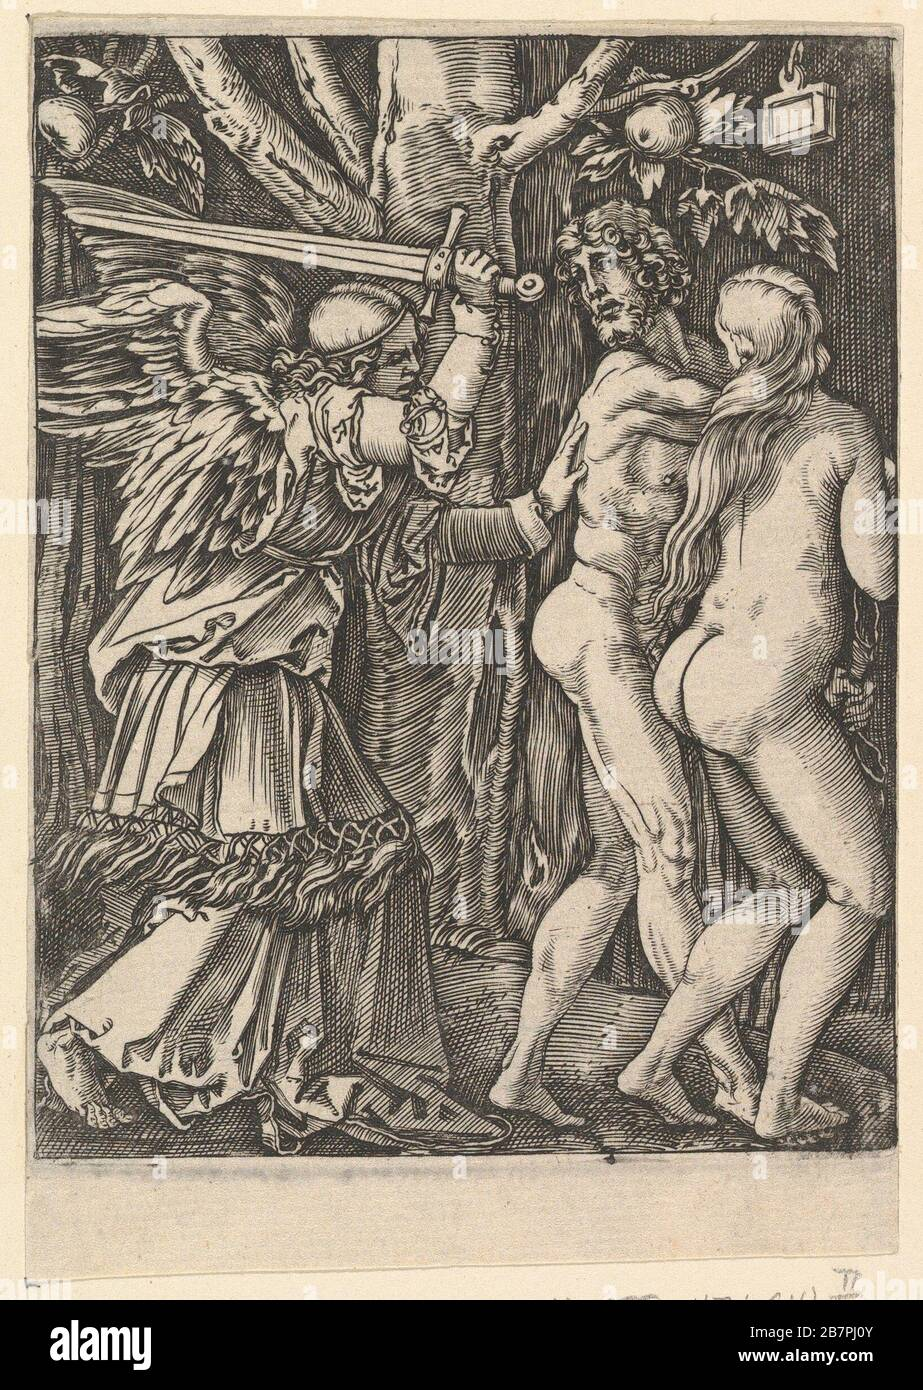 The Expulsion from the Paradise, after Dürer, ca. 1500-1534. Stock Photo